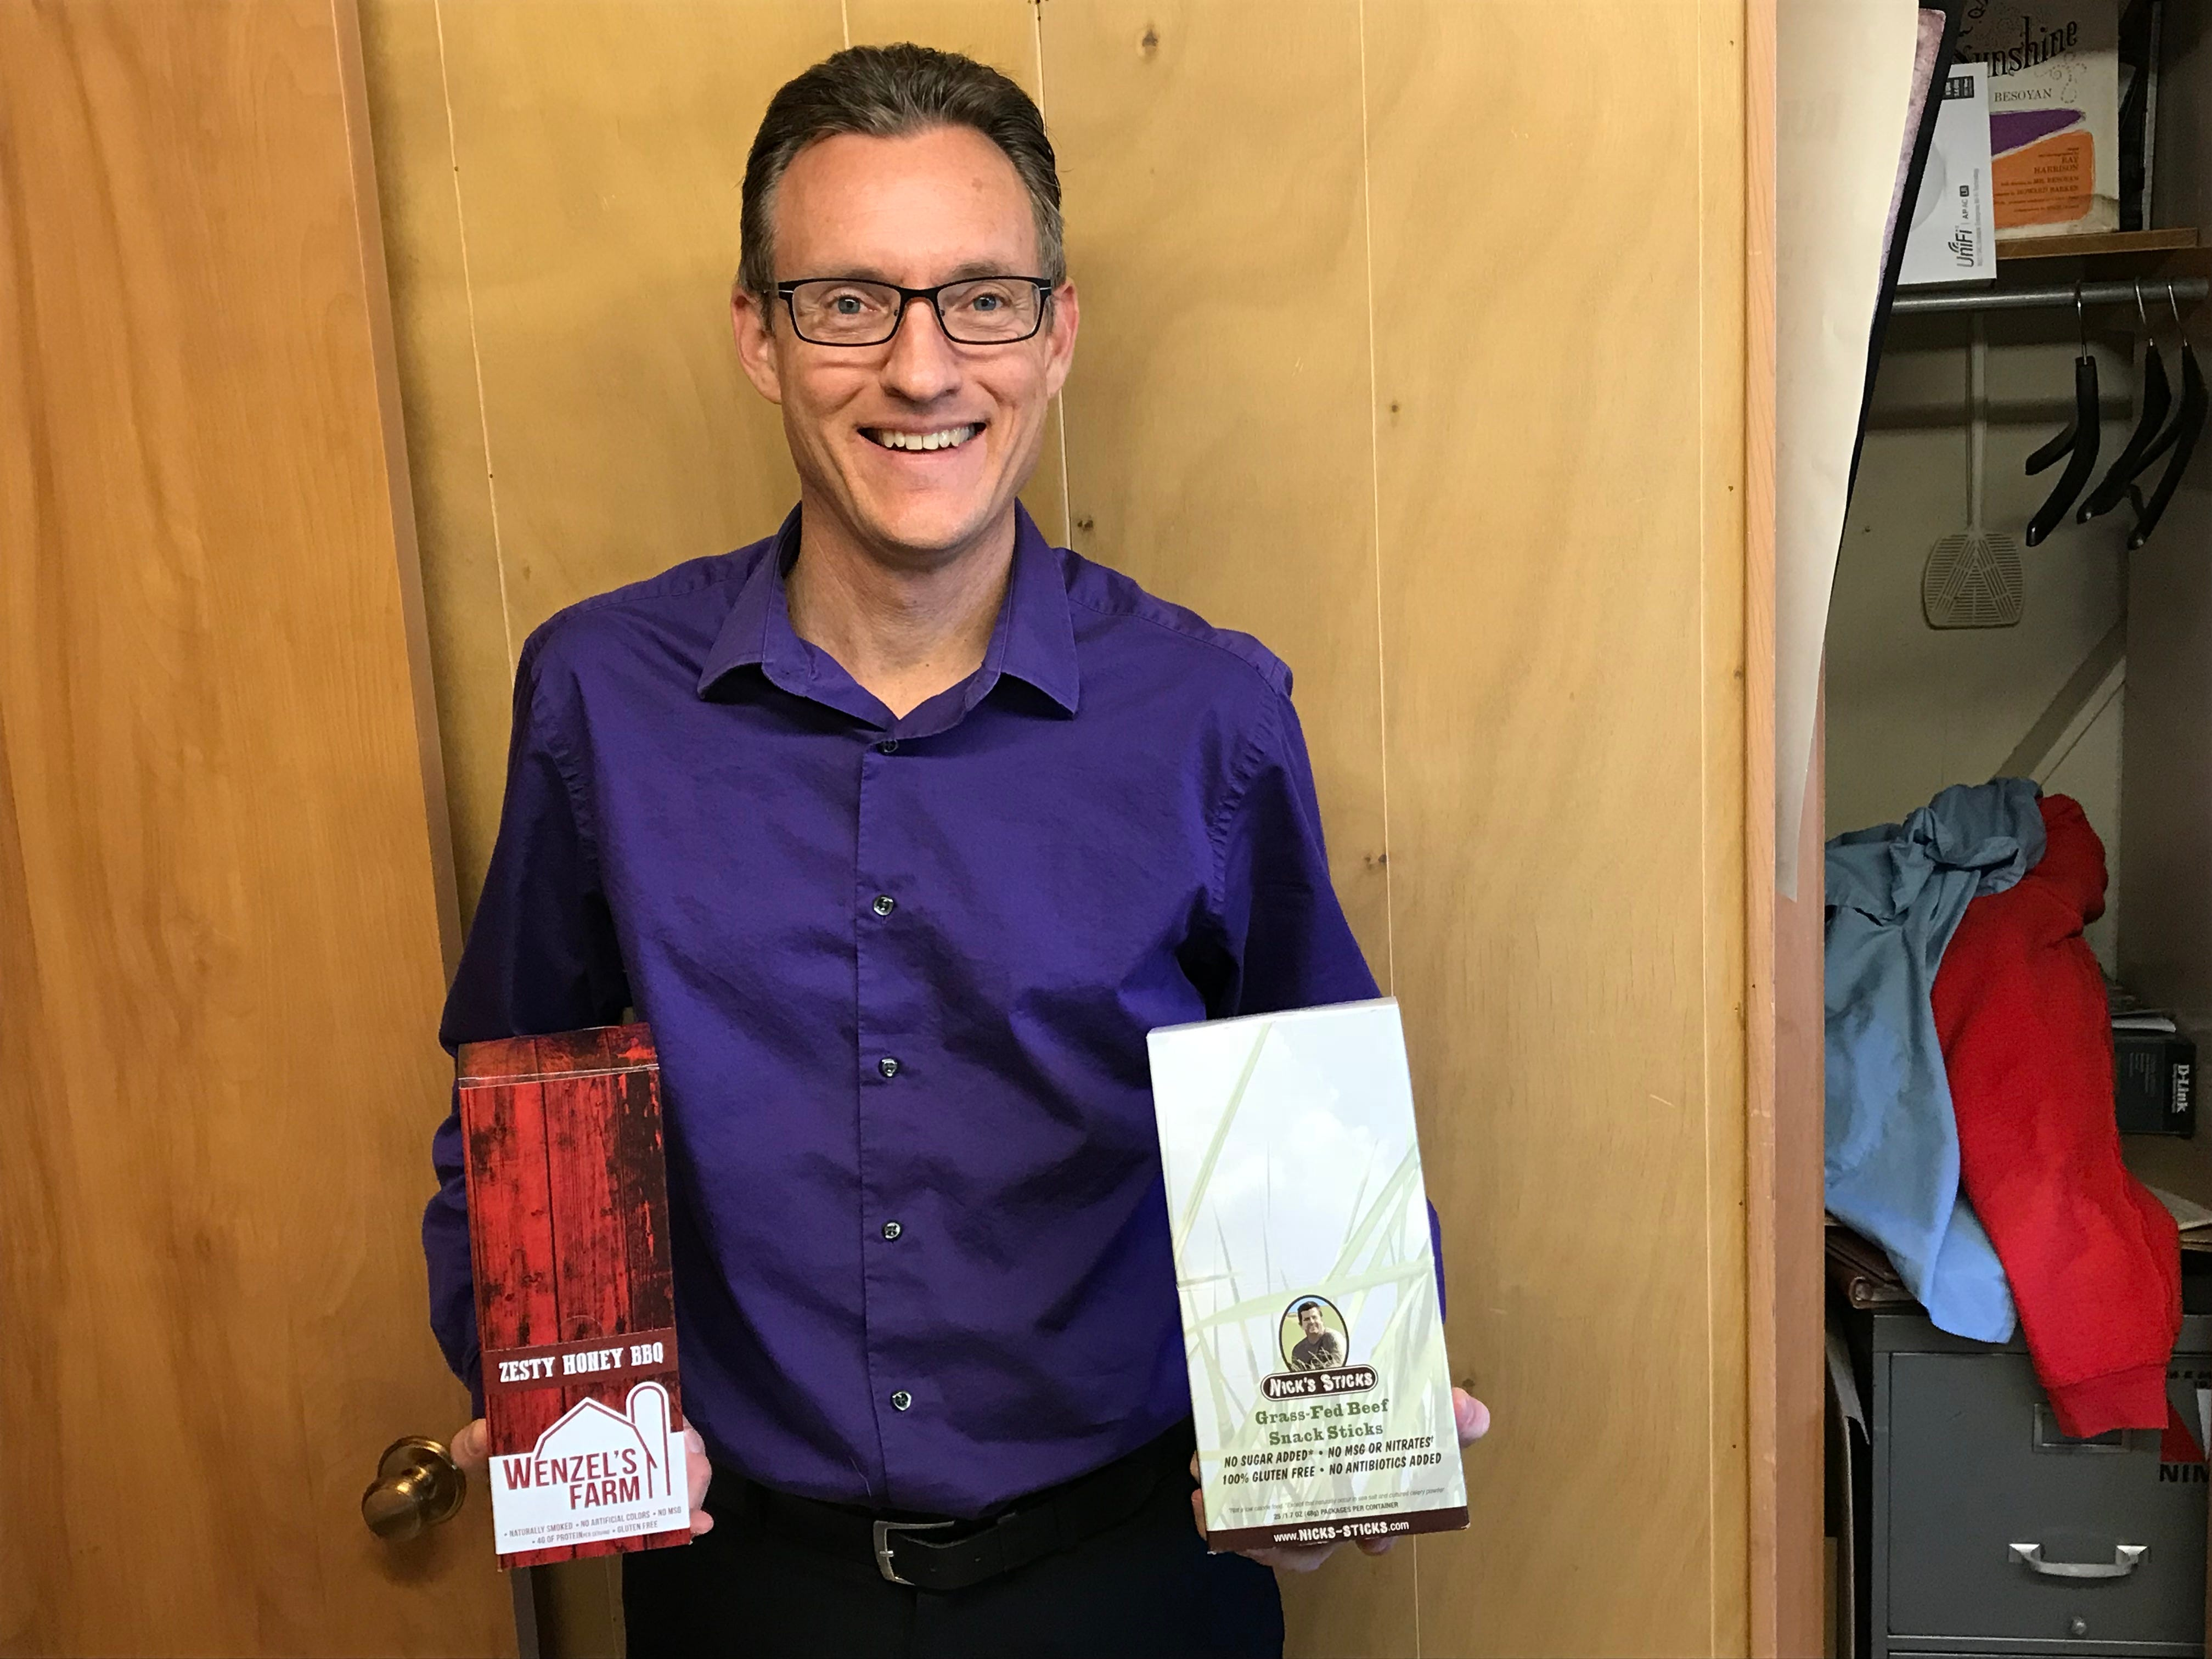 President of Wenzel's Farm president Mark Vieth holds a box of Zesty Spicy BBQ snack sticks and organic Nick's Sticks inside his office.